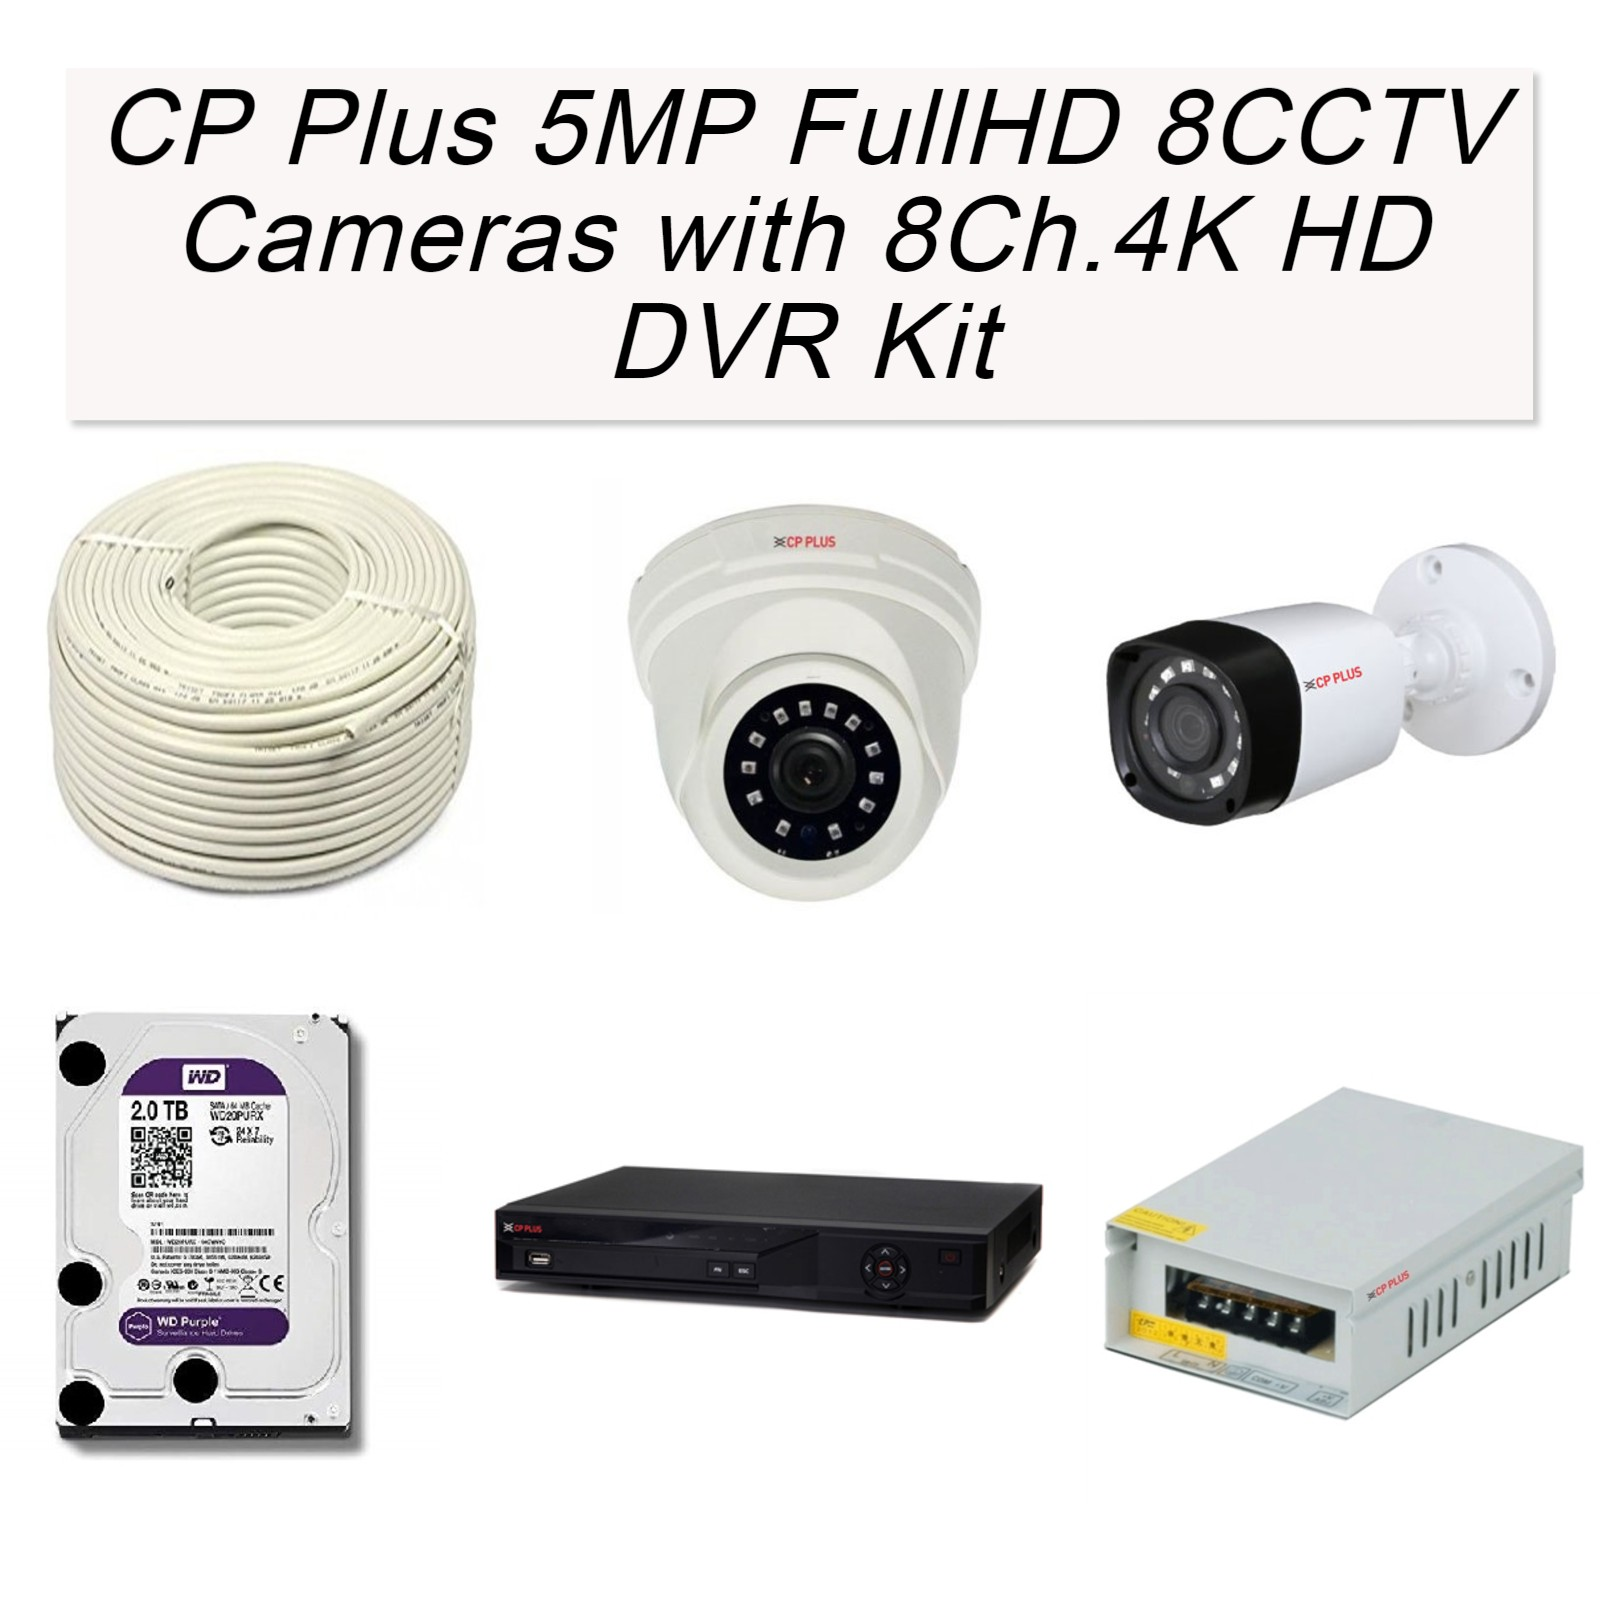 CP Plus 5MP Full HD 8 Full HD CCTV Cameras with 8Ch. 4K HD DVR Kit